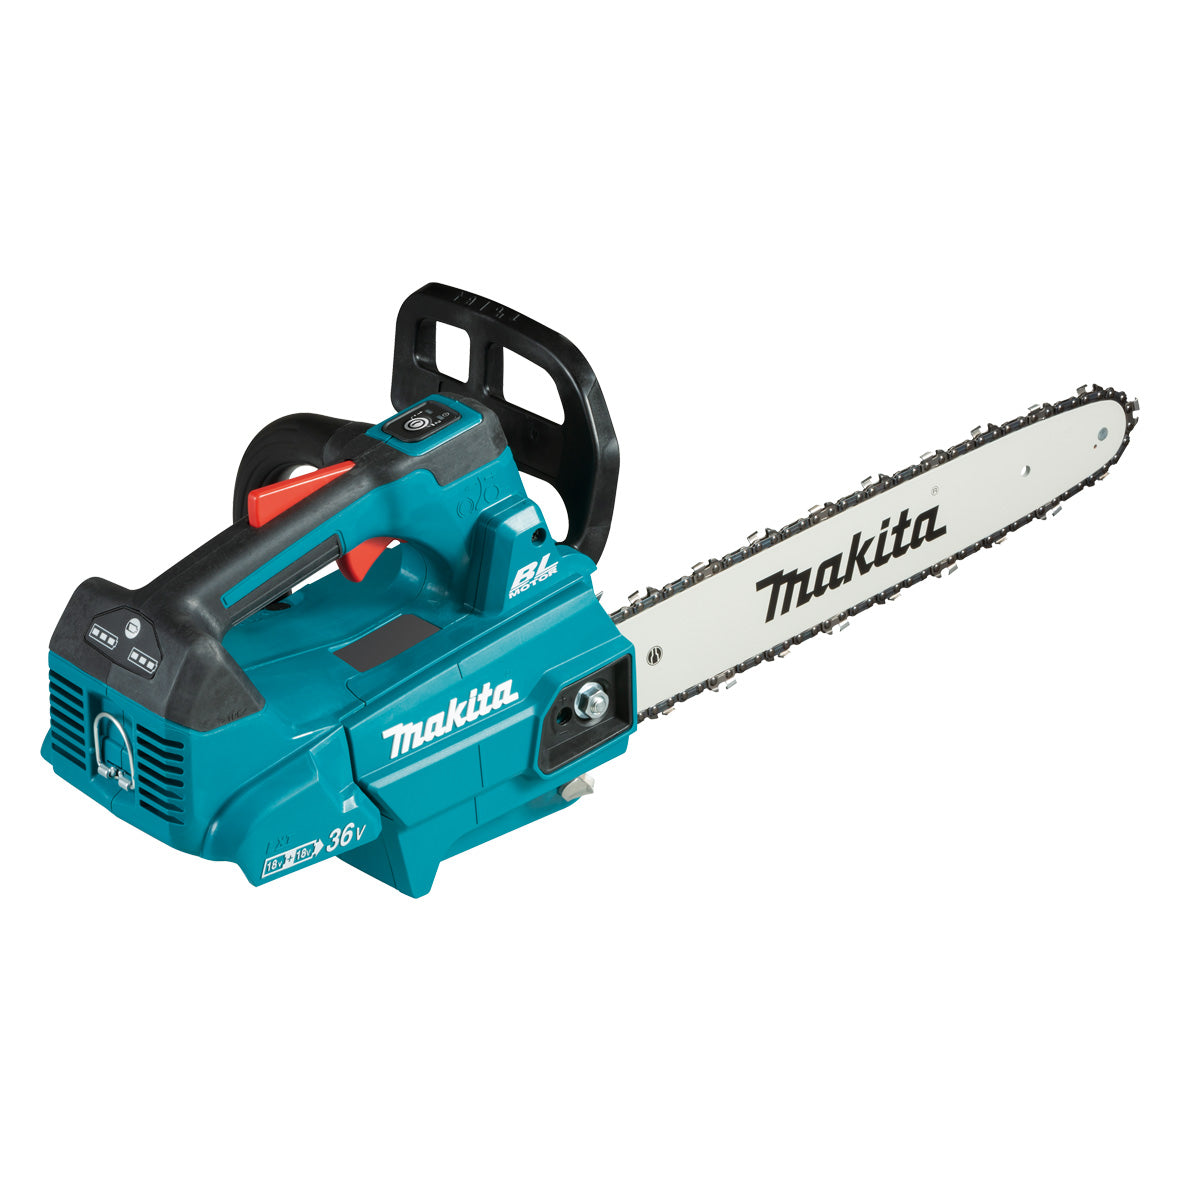 "Makita DUC306 18Vx2 Brushless Top Handle Chainsaw 300mm (12"")"